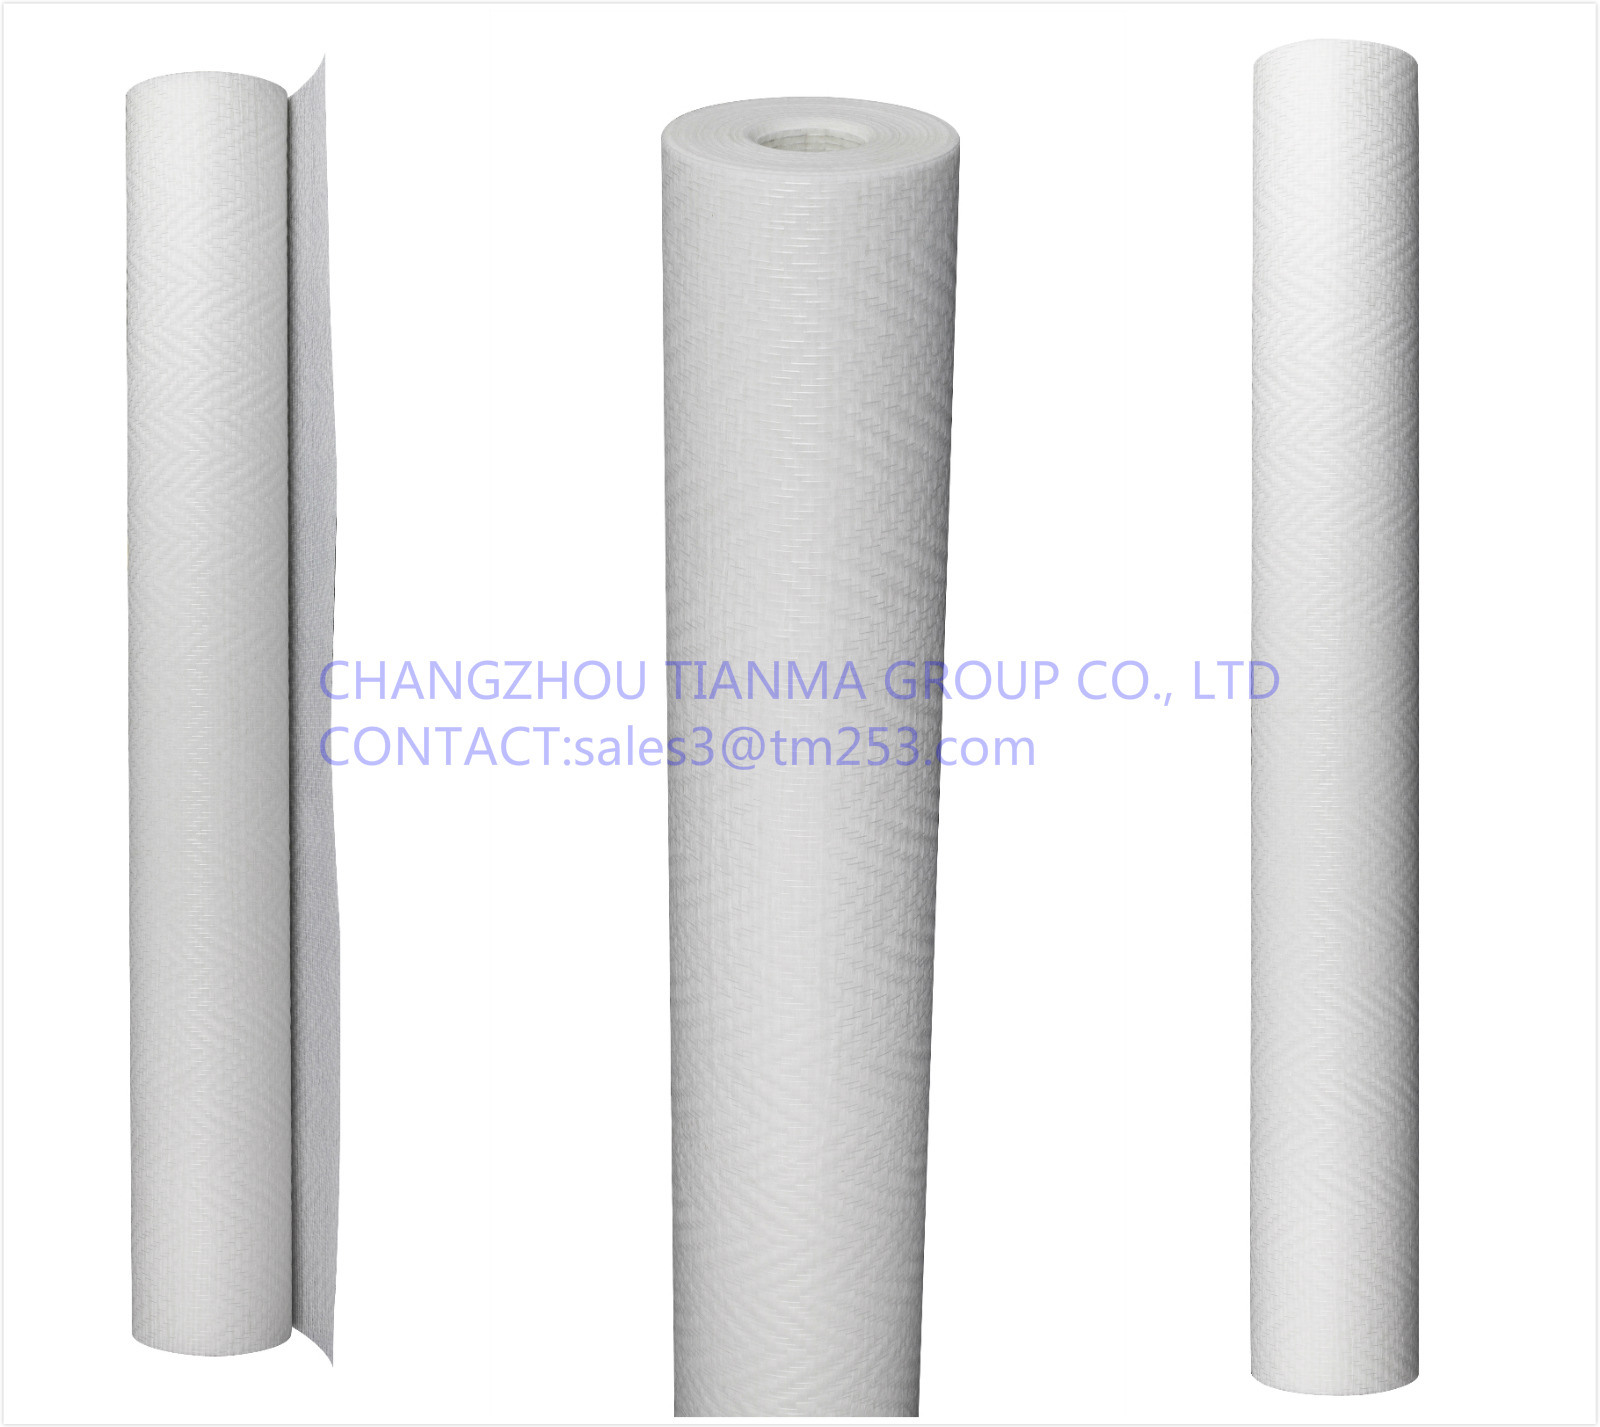 High Quality Fiberglass Wallcovering Paper H0104